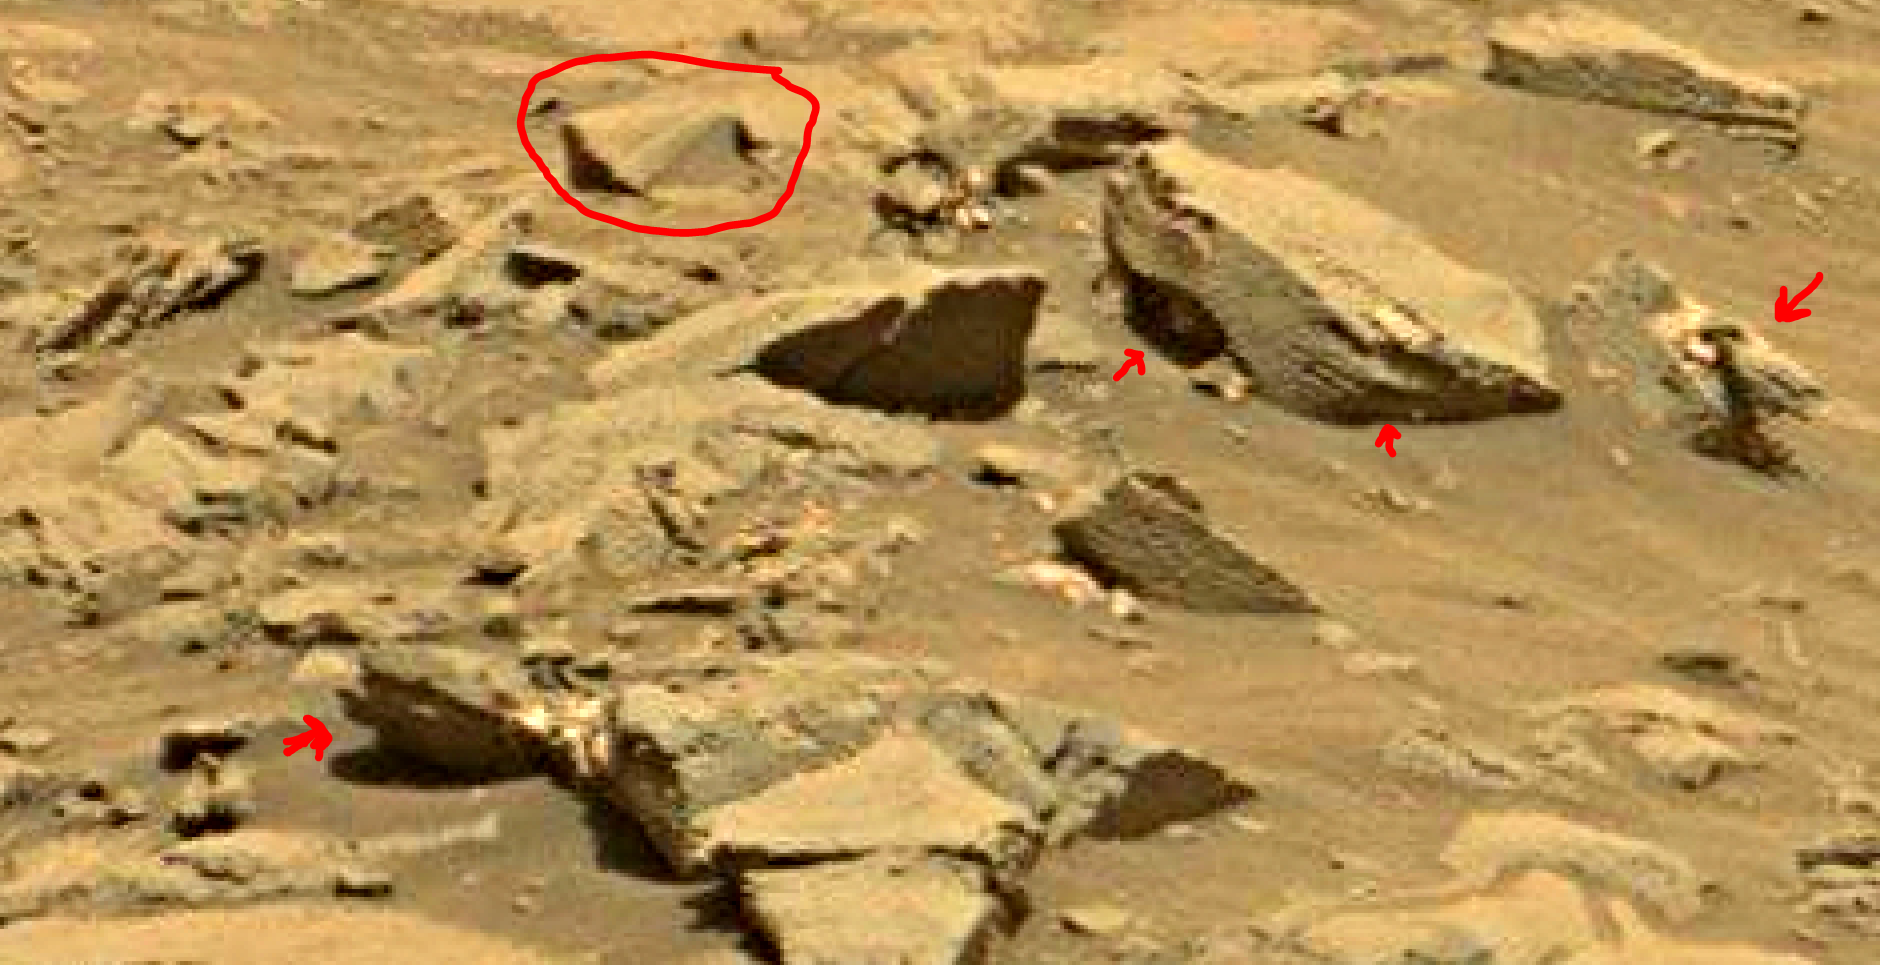 mars sol 1353 anomaly-artifacts 41a was life on mars